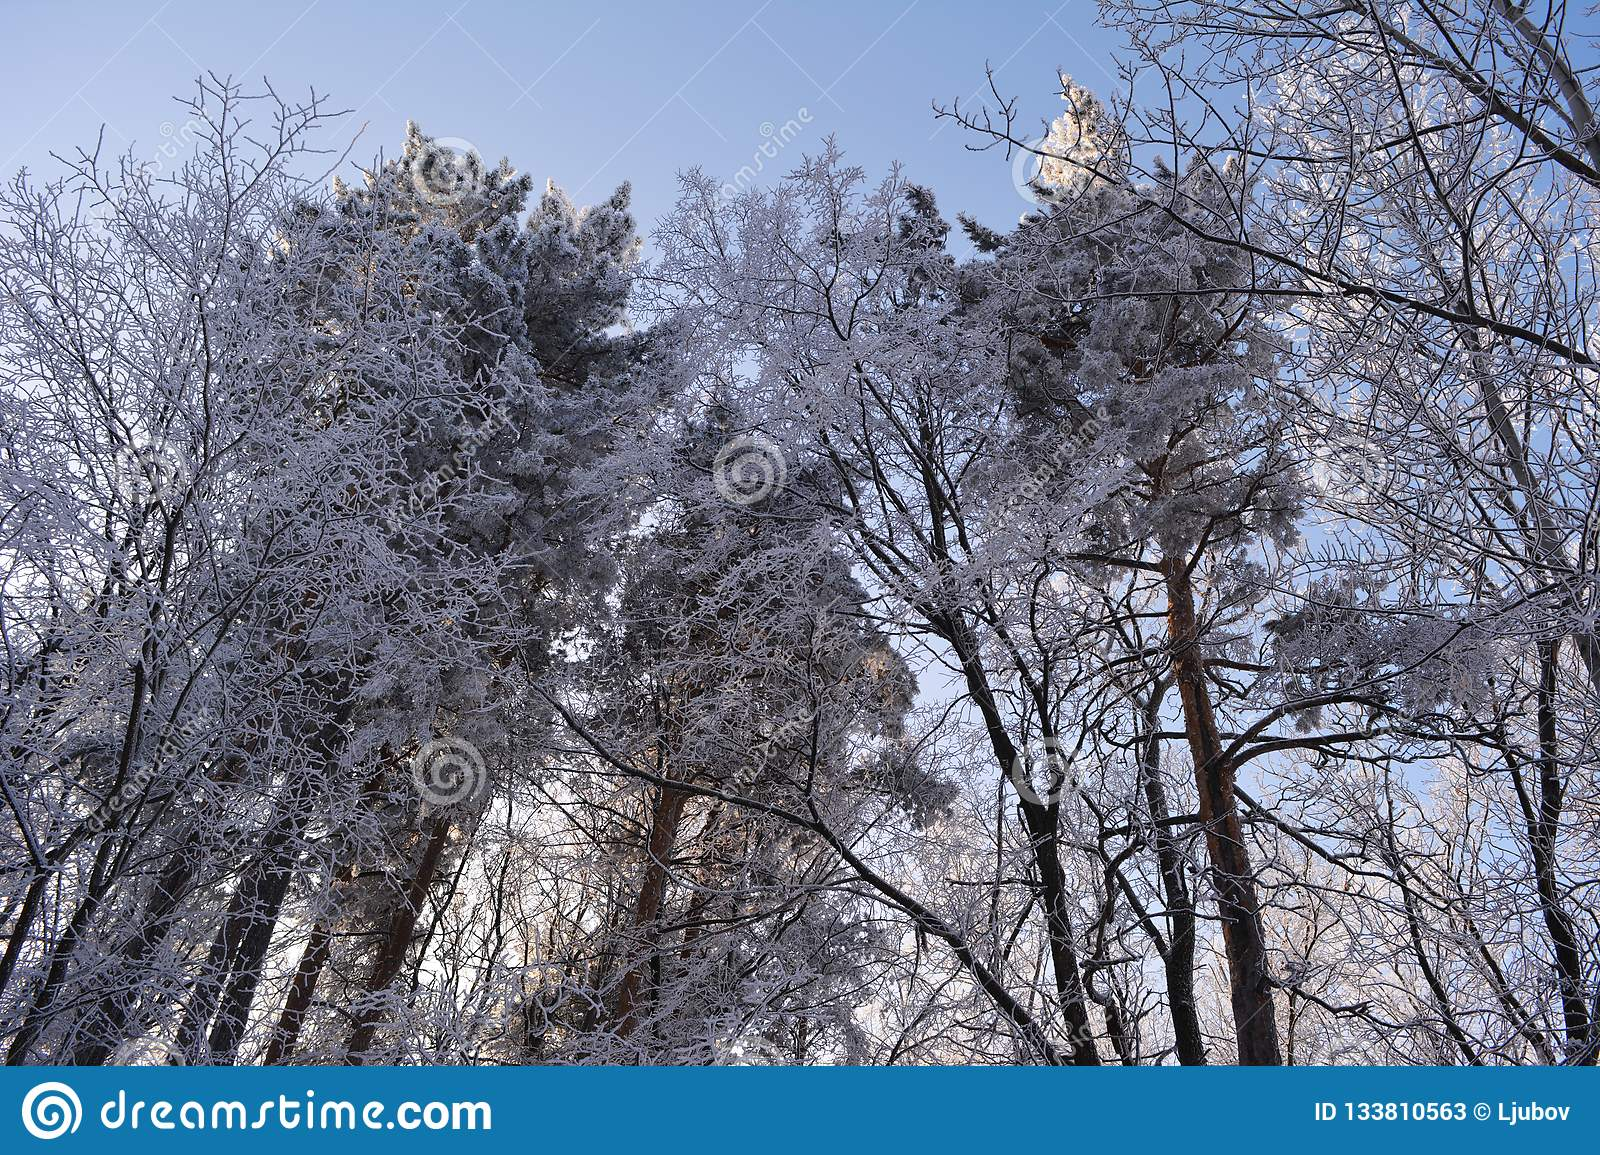 Winter mixed forest covered by snow hoarfrost. Wintry landscape